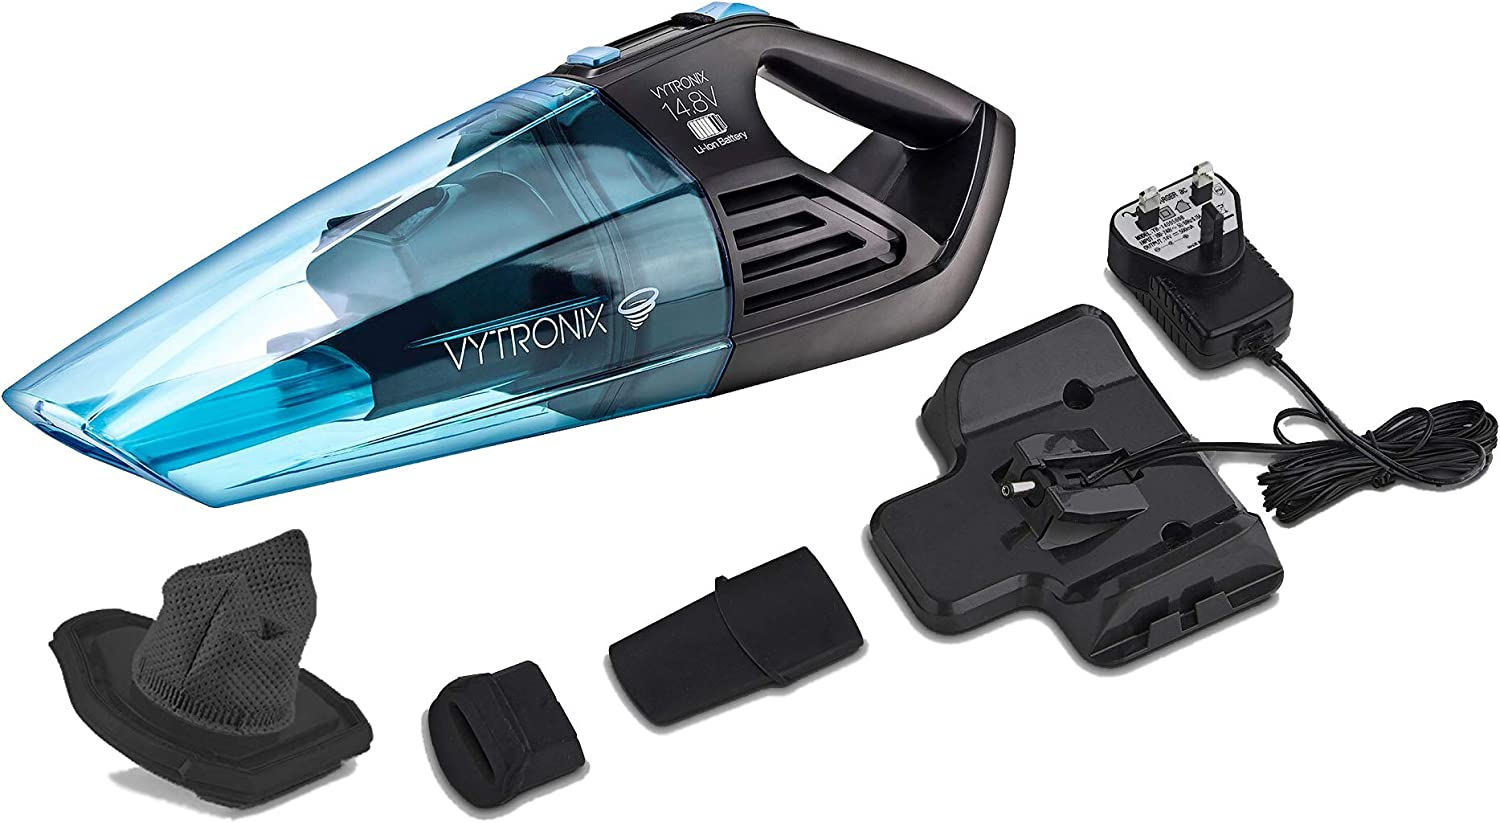 VYTRONIX HWD148 Cordless 14.8V Lithium Handheld Wet & Dry Vac Portable Rechargeable Bagless Vacuum Cleaner